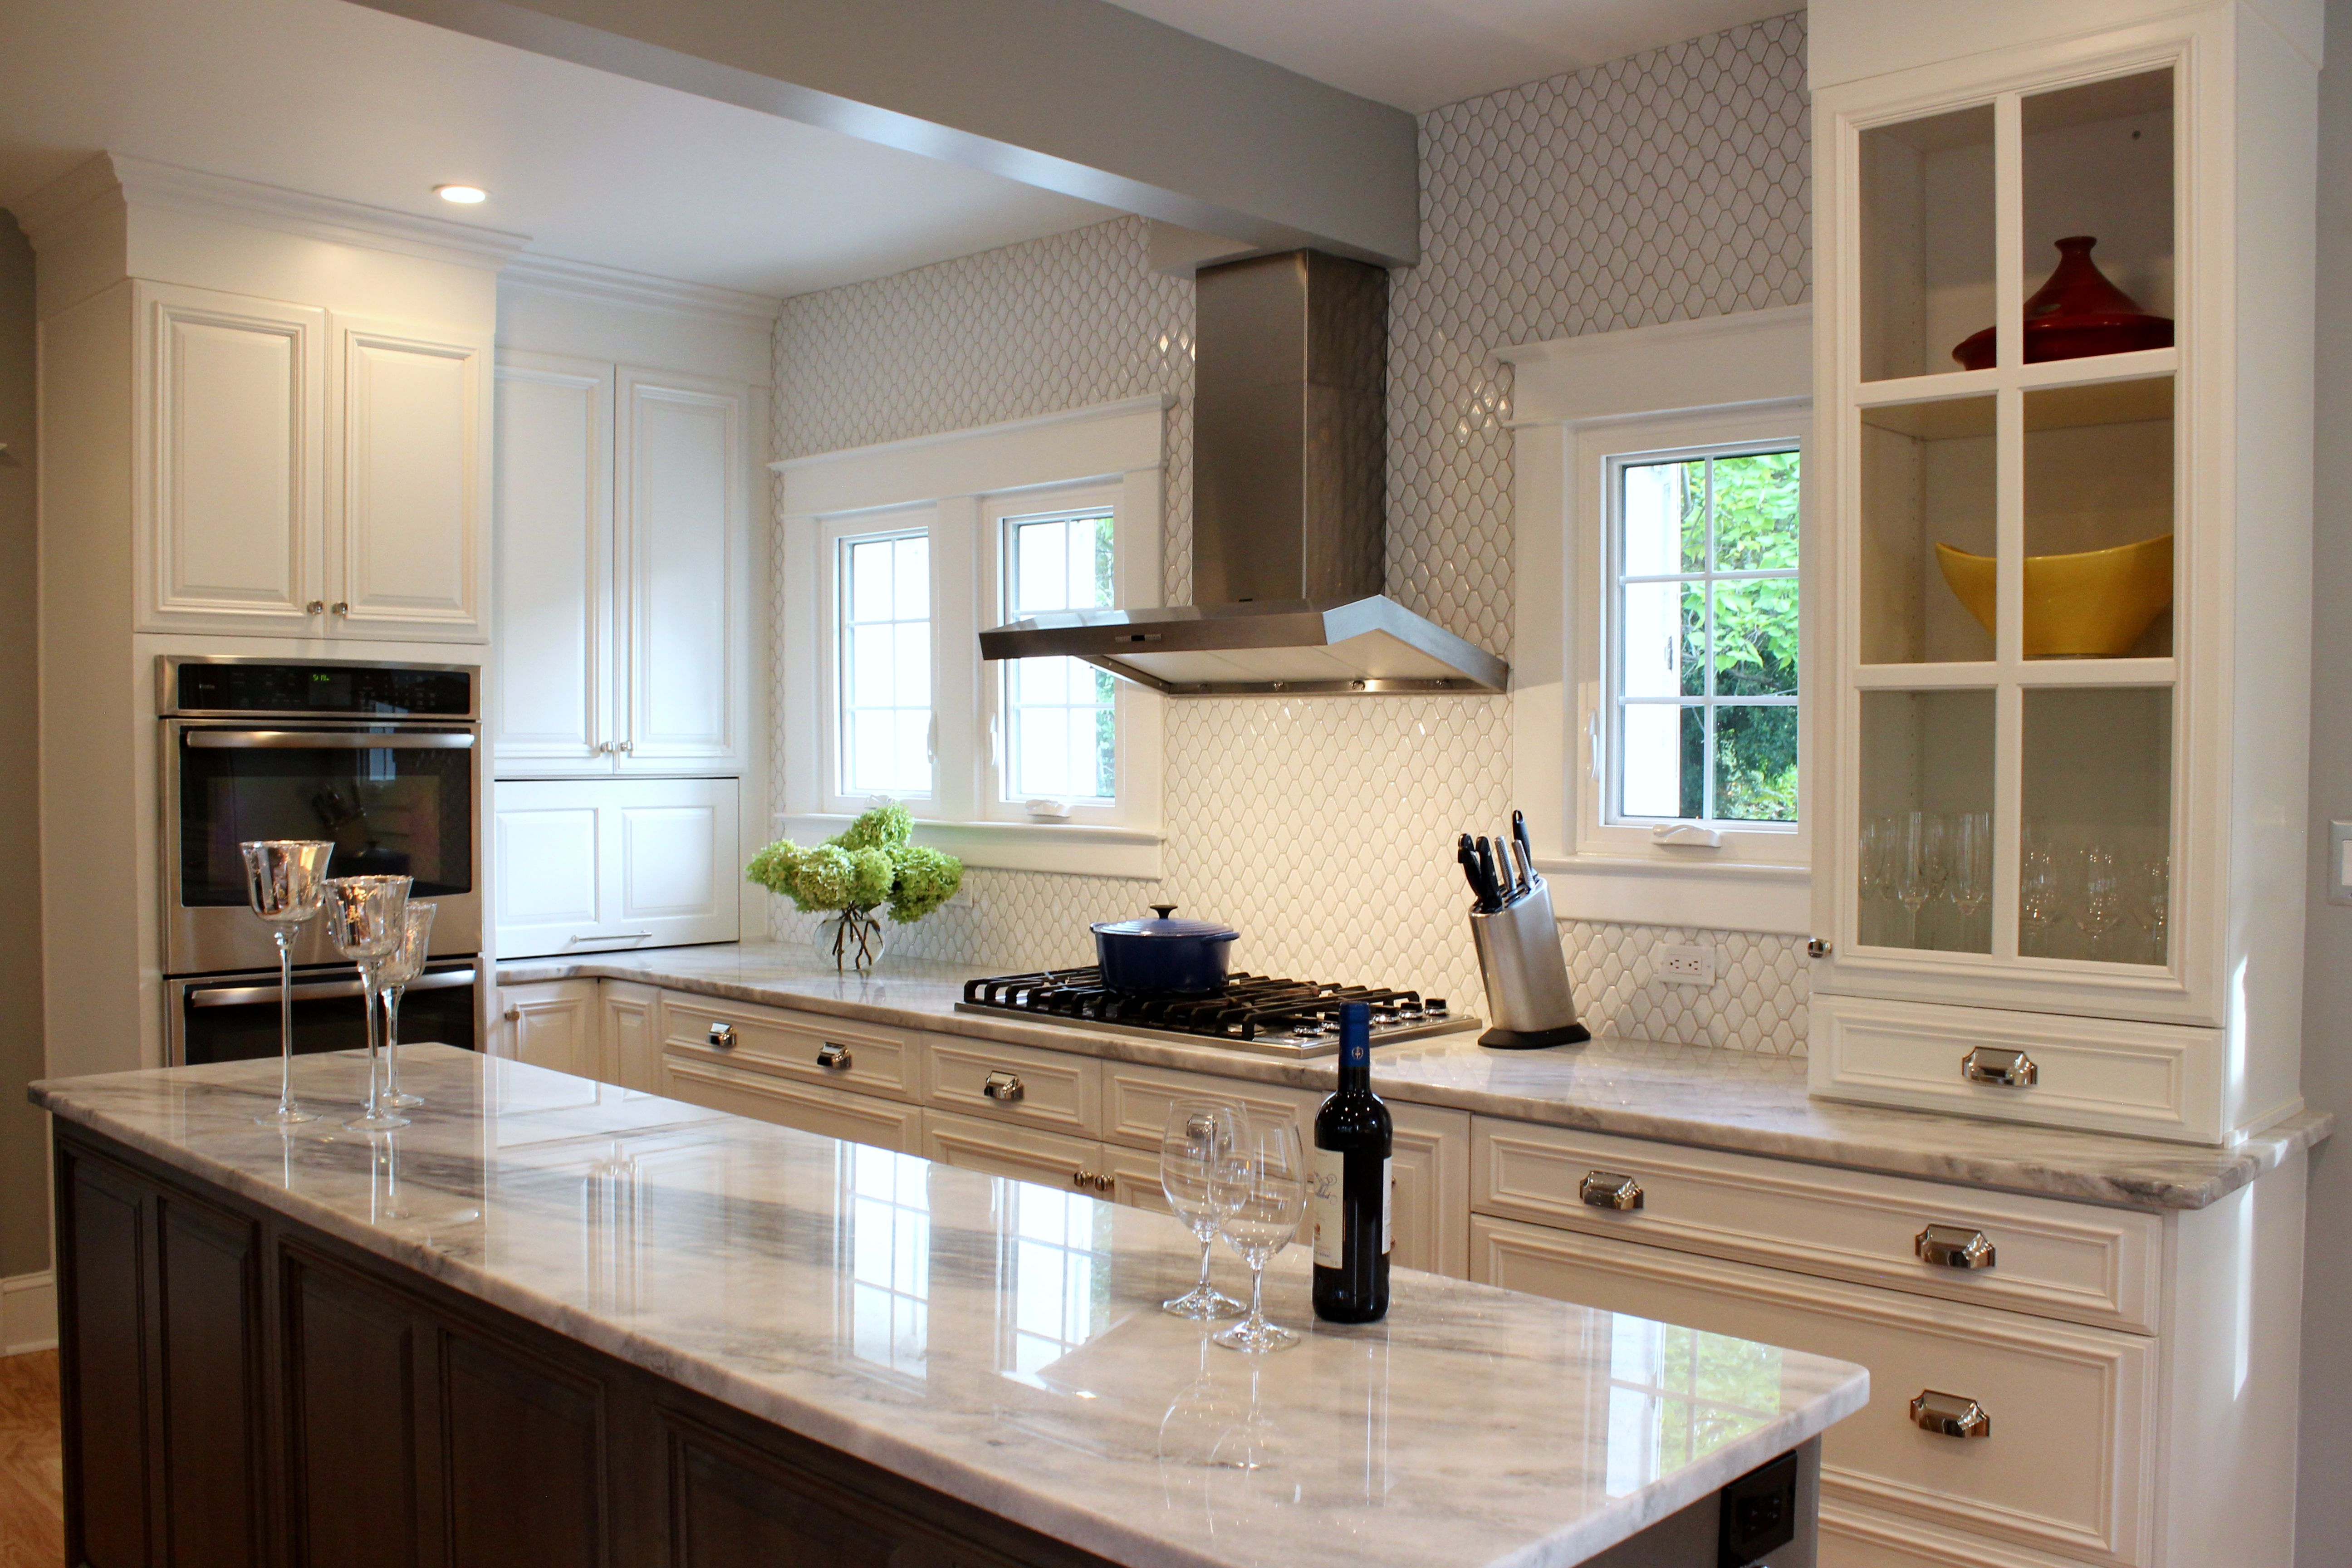 design nj kitchen cool online custom prices cabinets unusual cabinet brookhaven cost toronto hbe